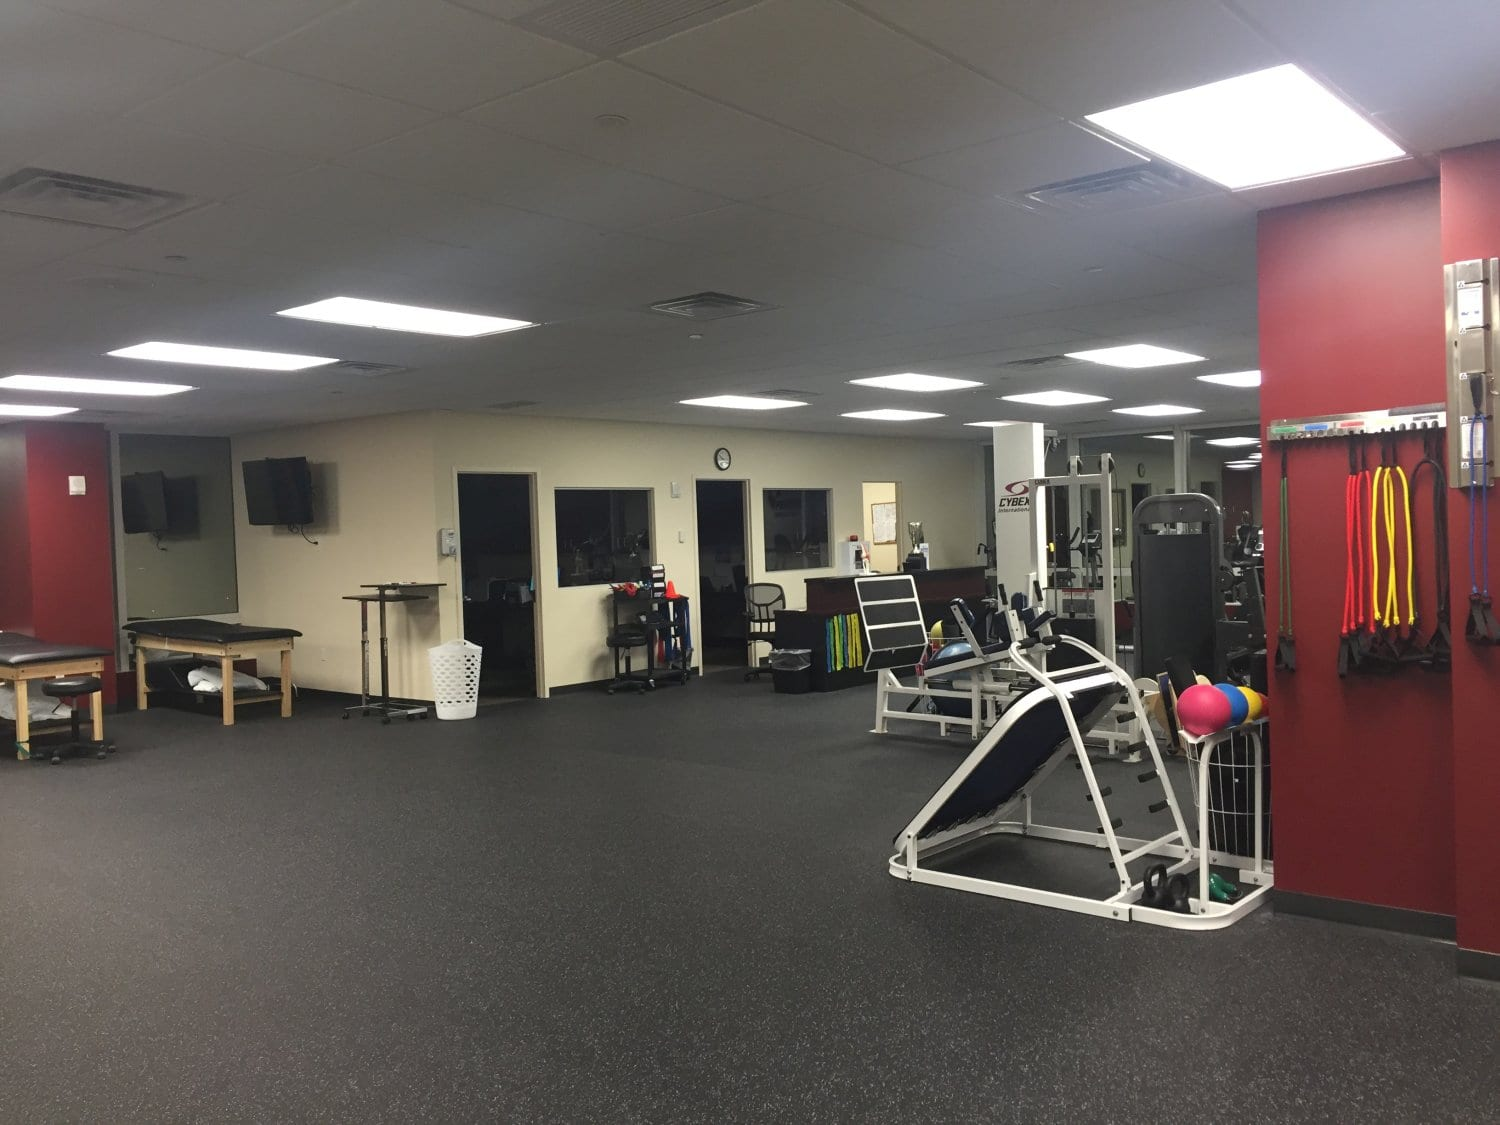 Another angle of the training area at our physical therapy clinic in Bronx, NY. There are stretch bands hanging on the wall which are great for strength training.